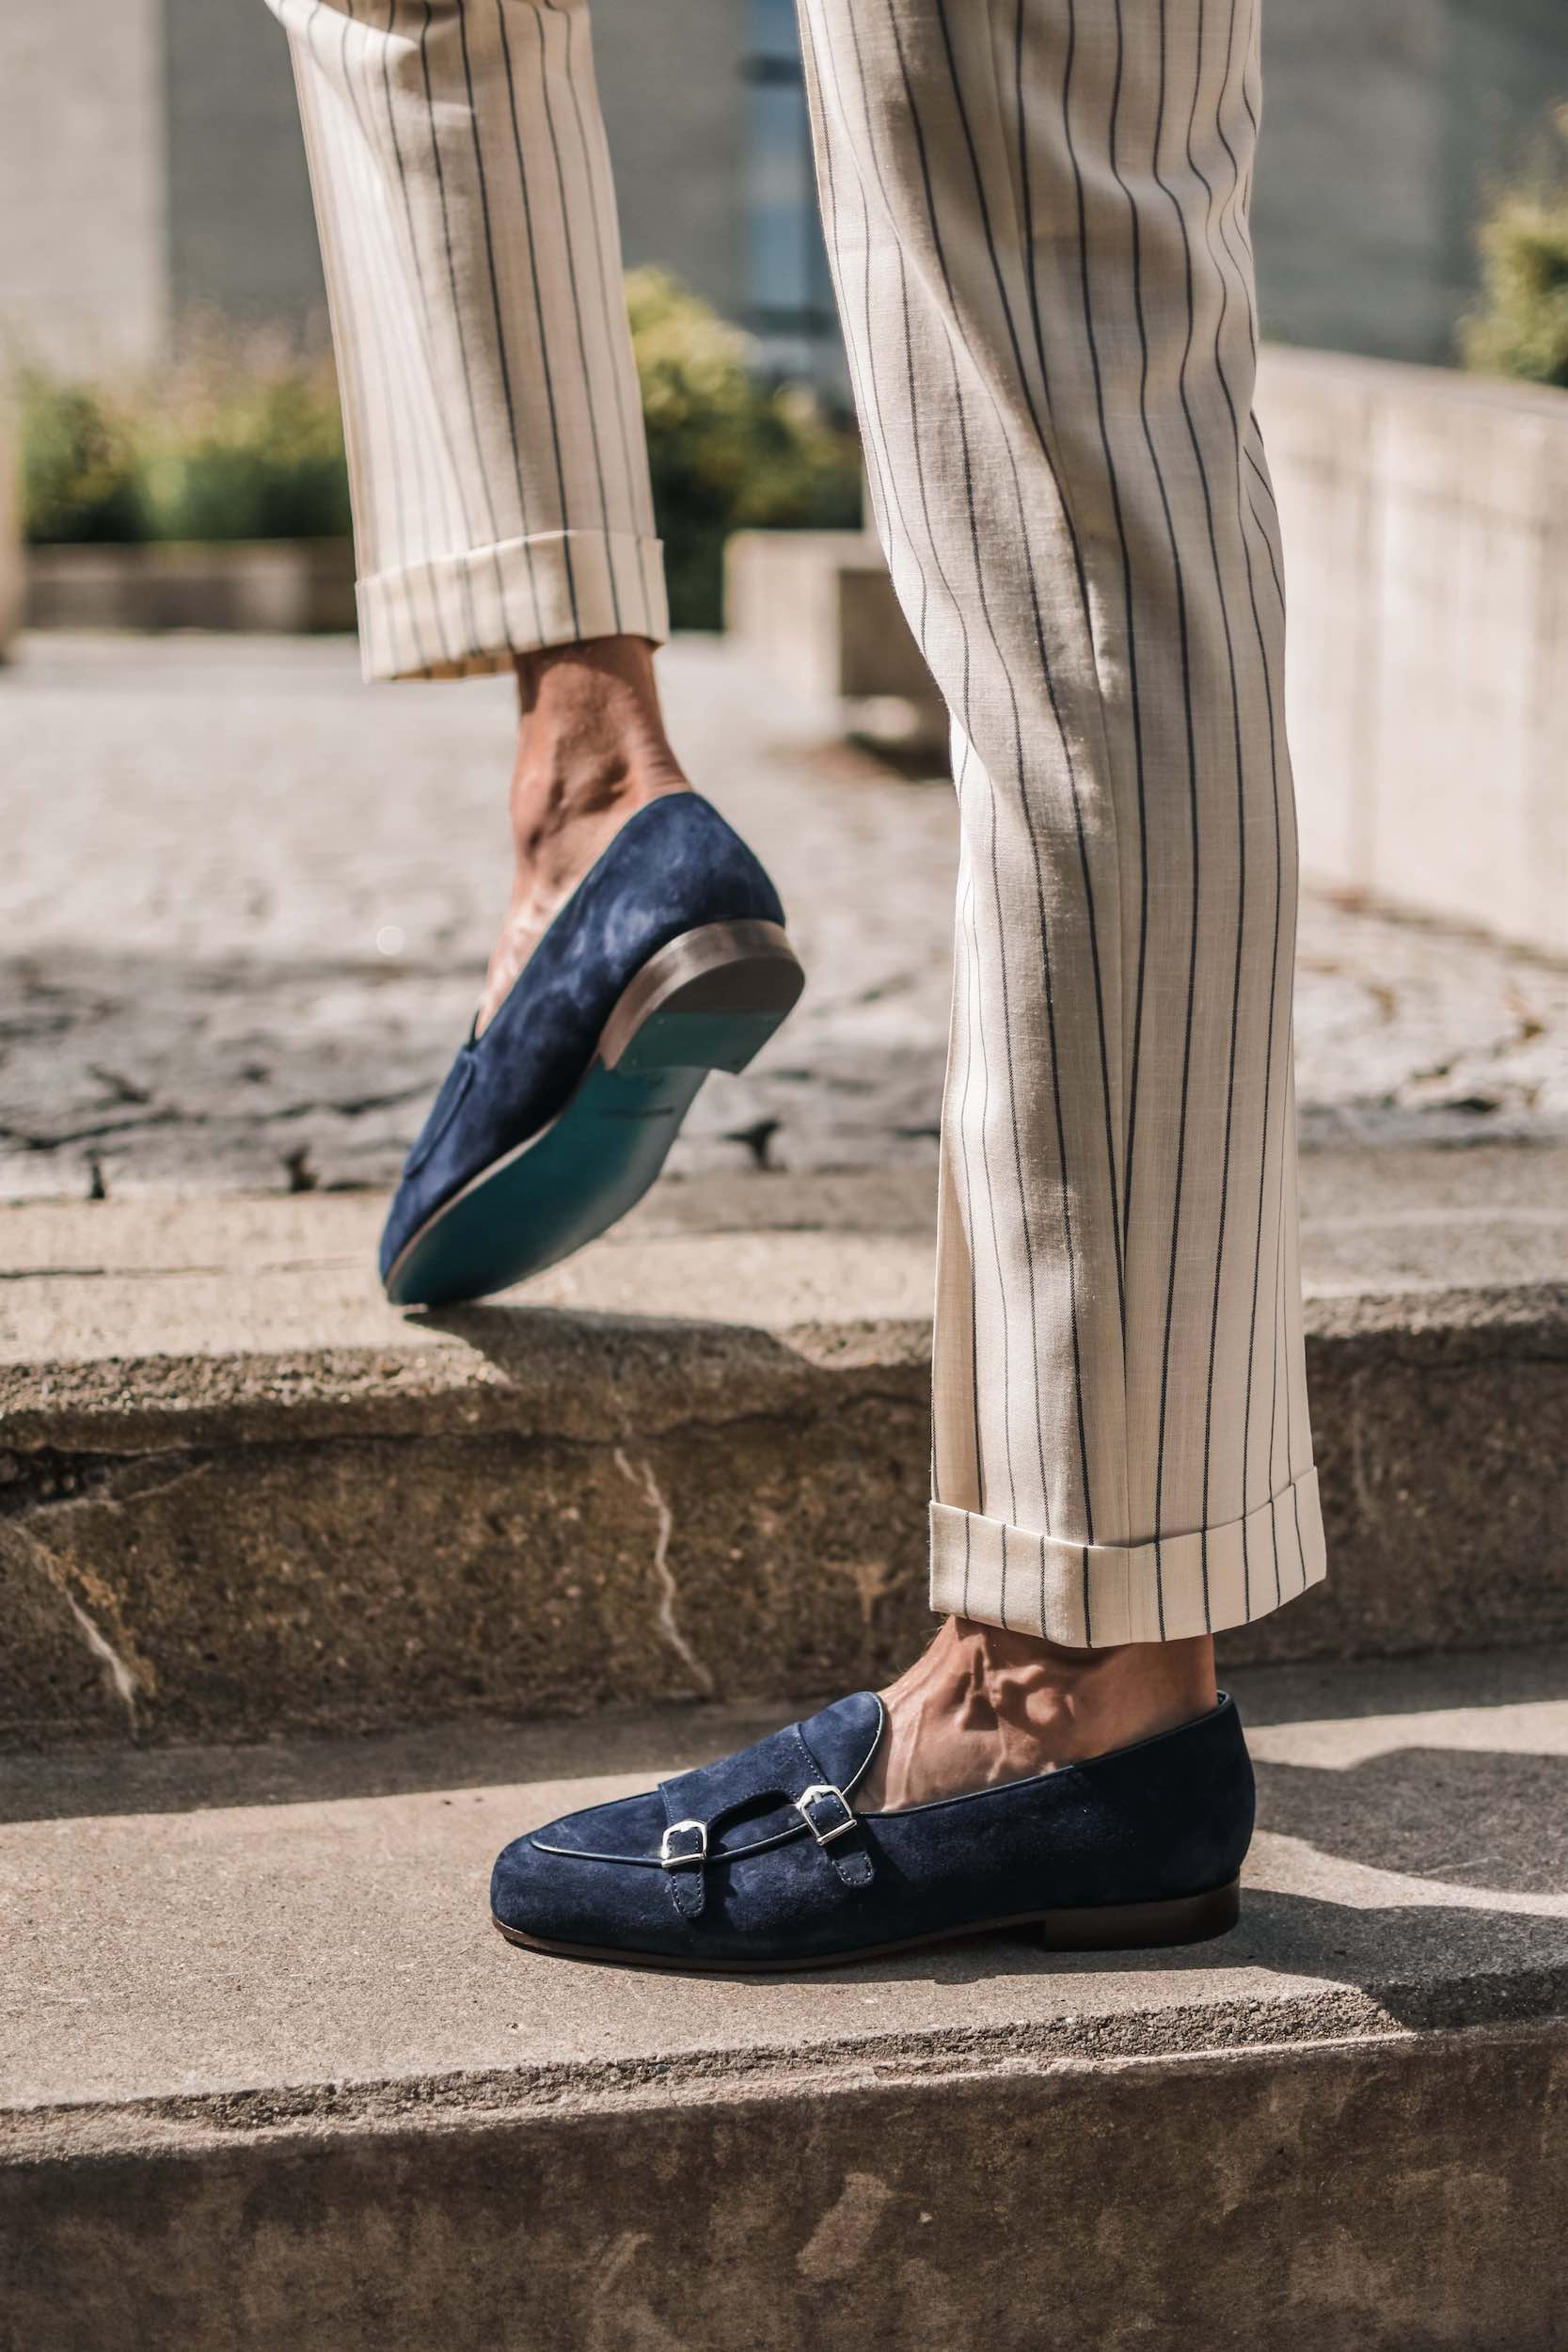 Dalbiondo's handmade double monk loafers, navy blue suede